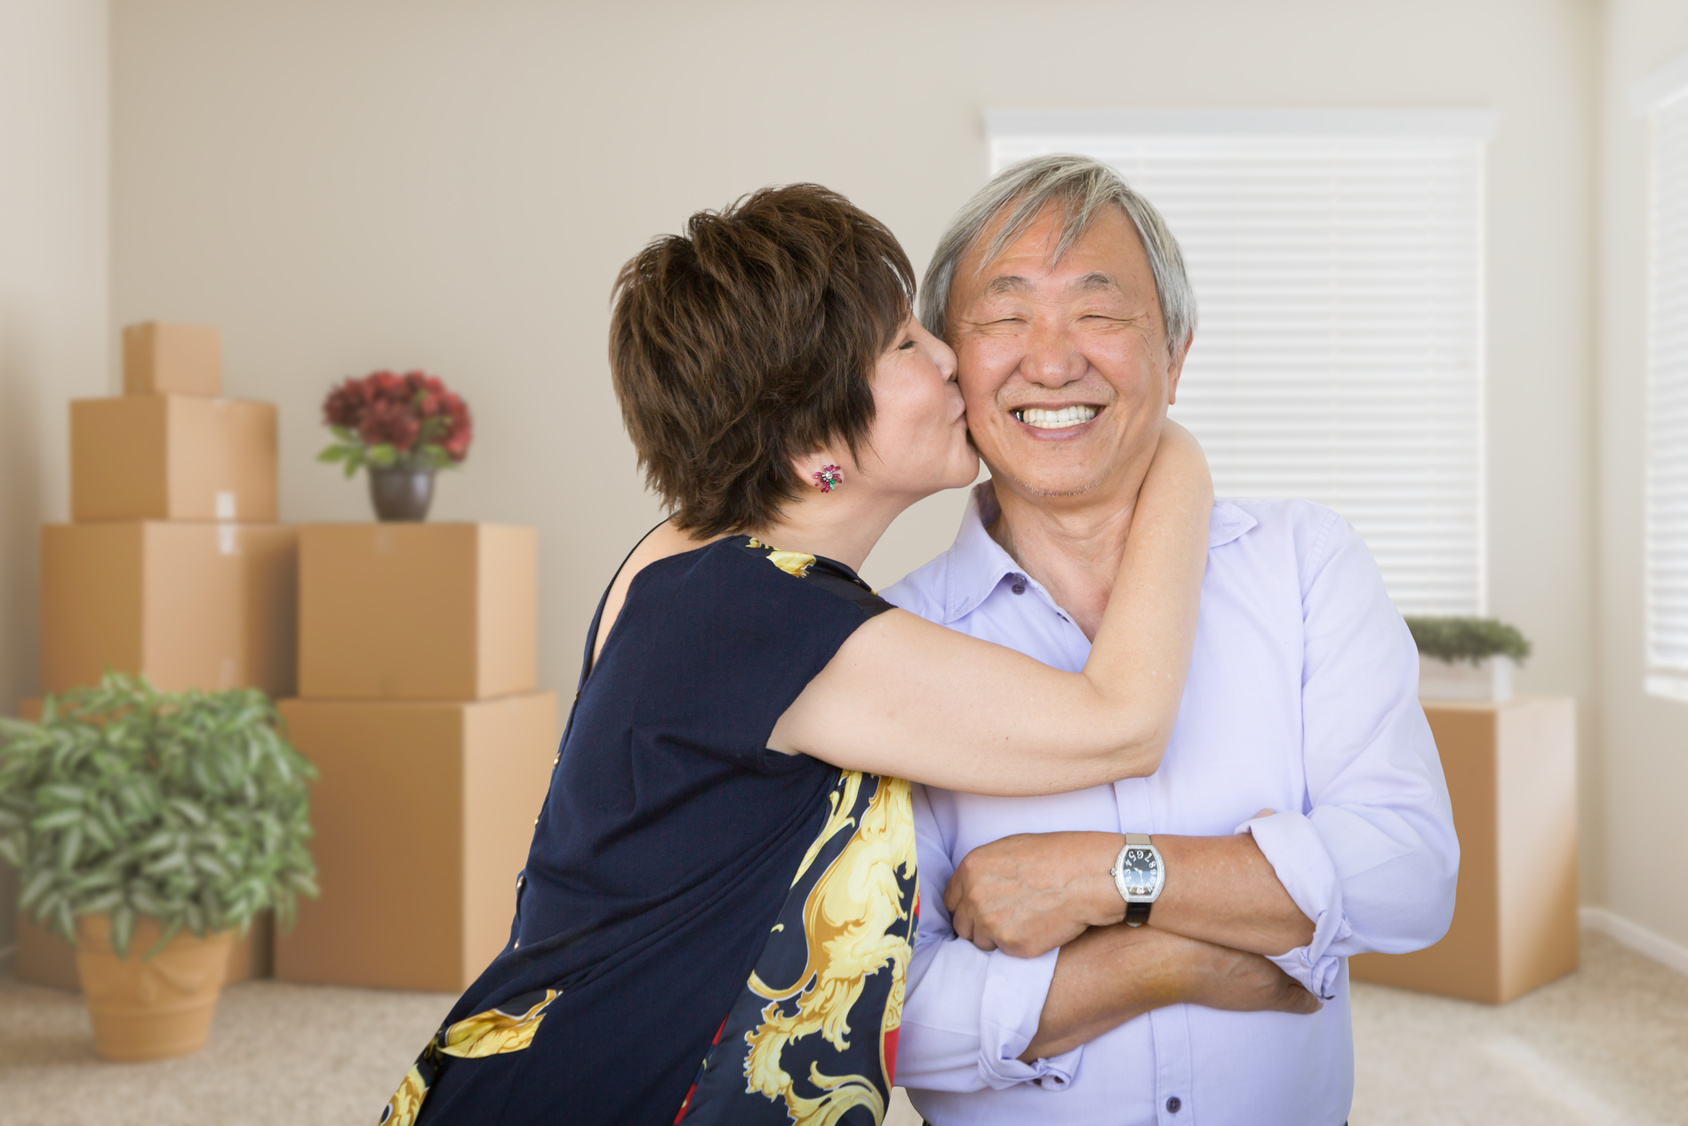 Happy Senior Chinese Couple Inside Empty Room with Moving Boxes and Plants.